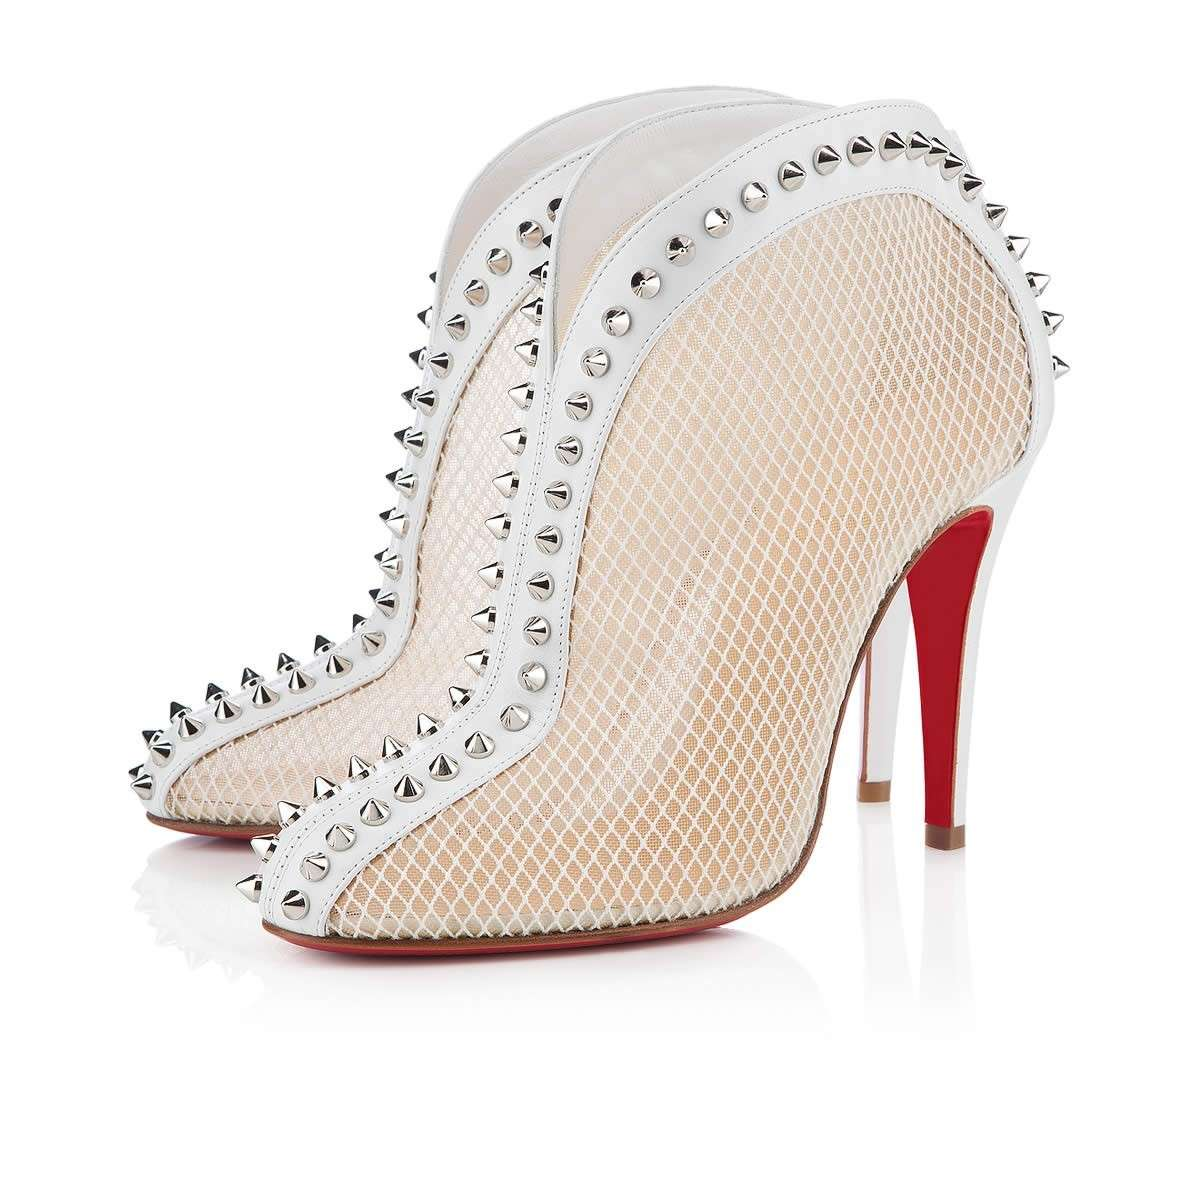 Ankle boot Bourriche Louboutin